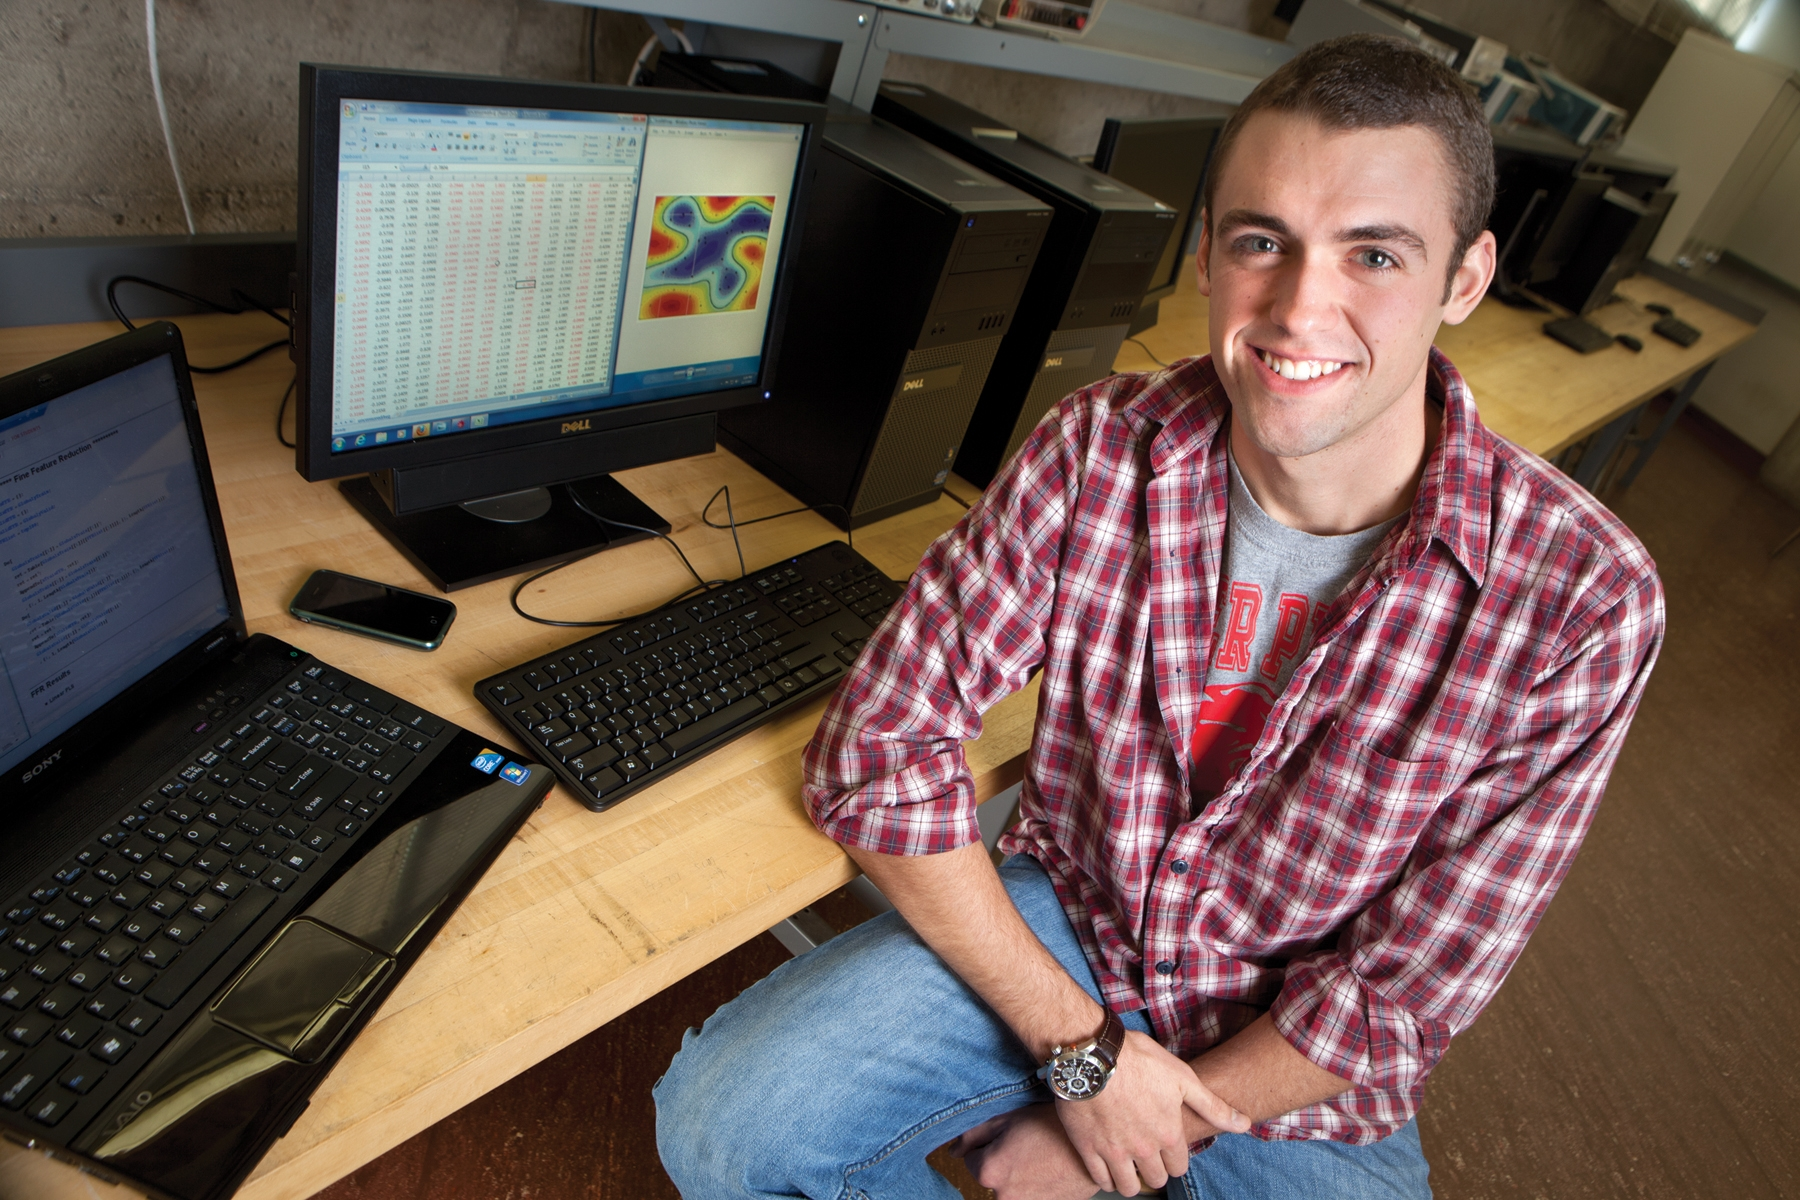 Bioengineering student's work pays dividends